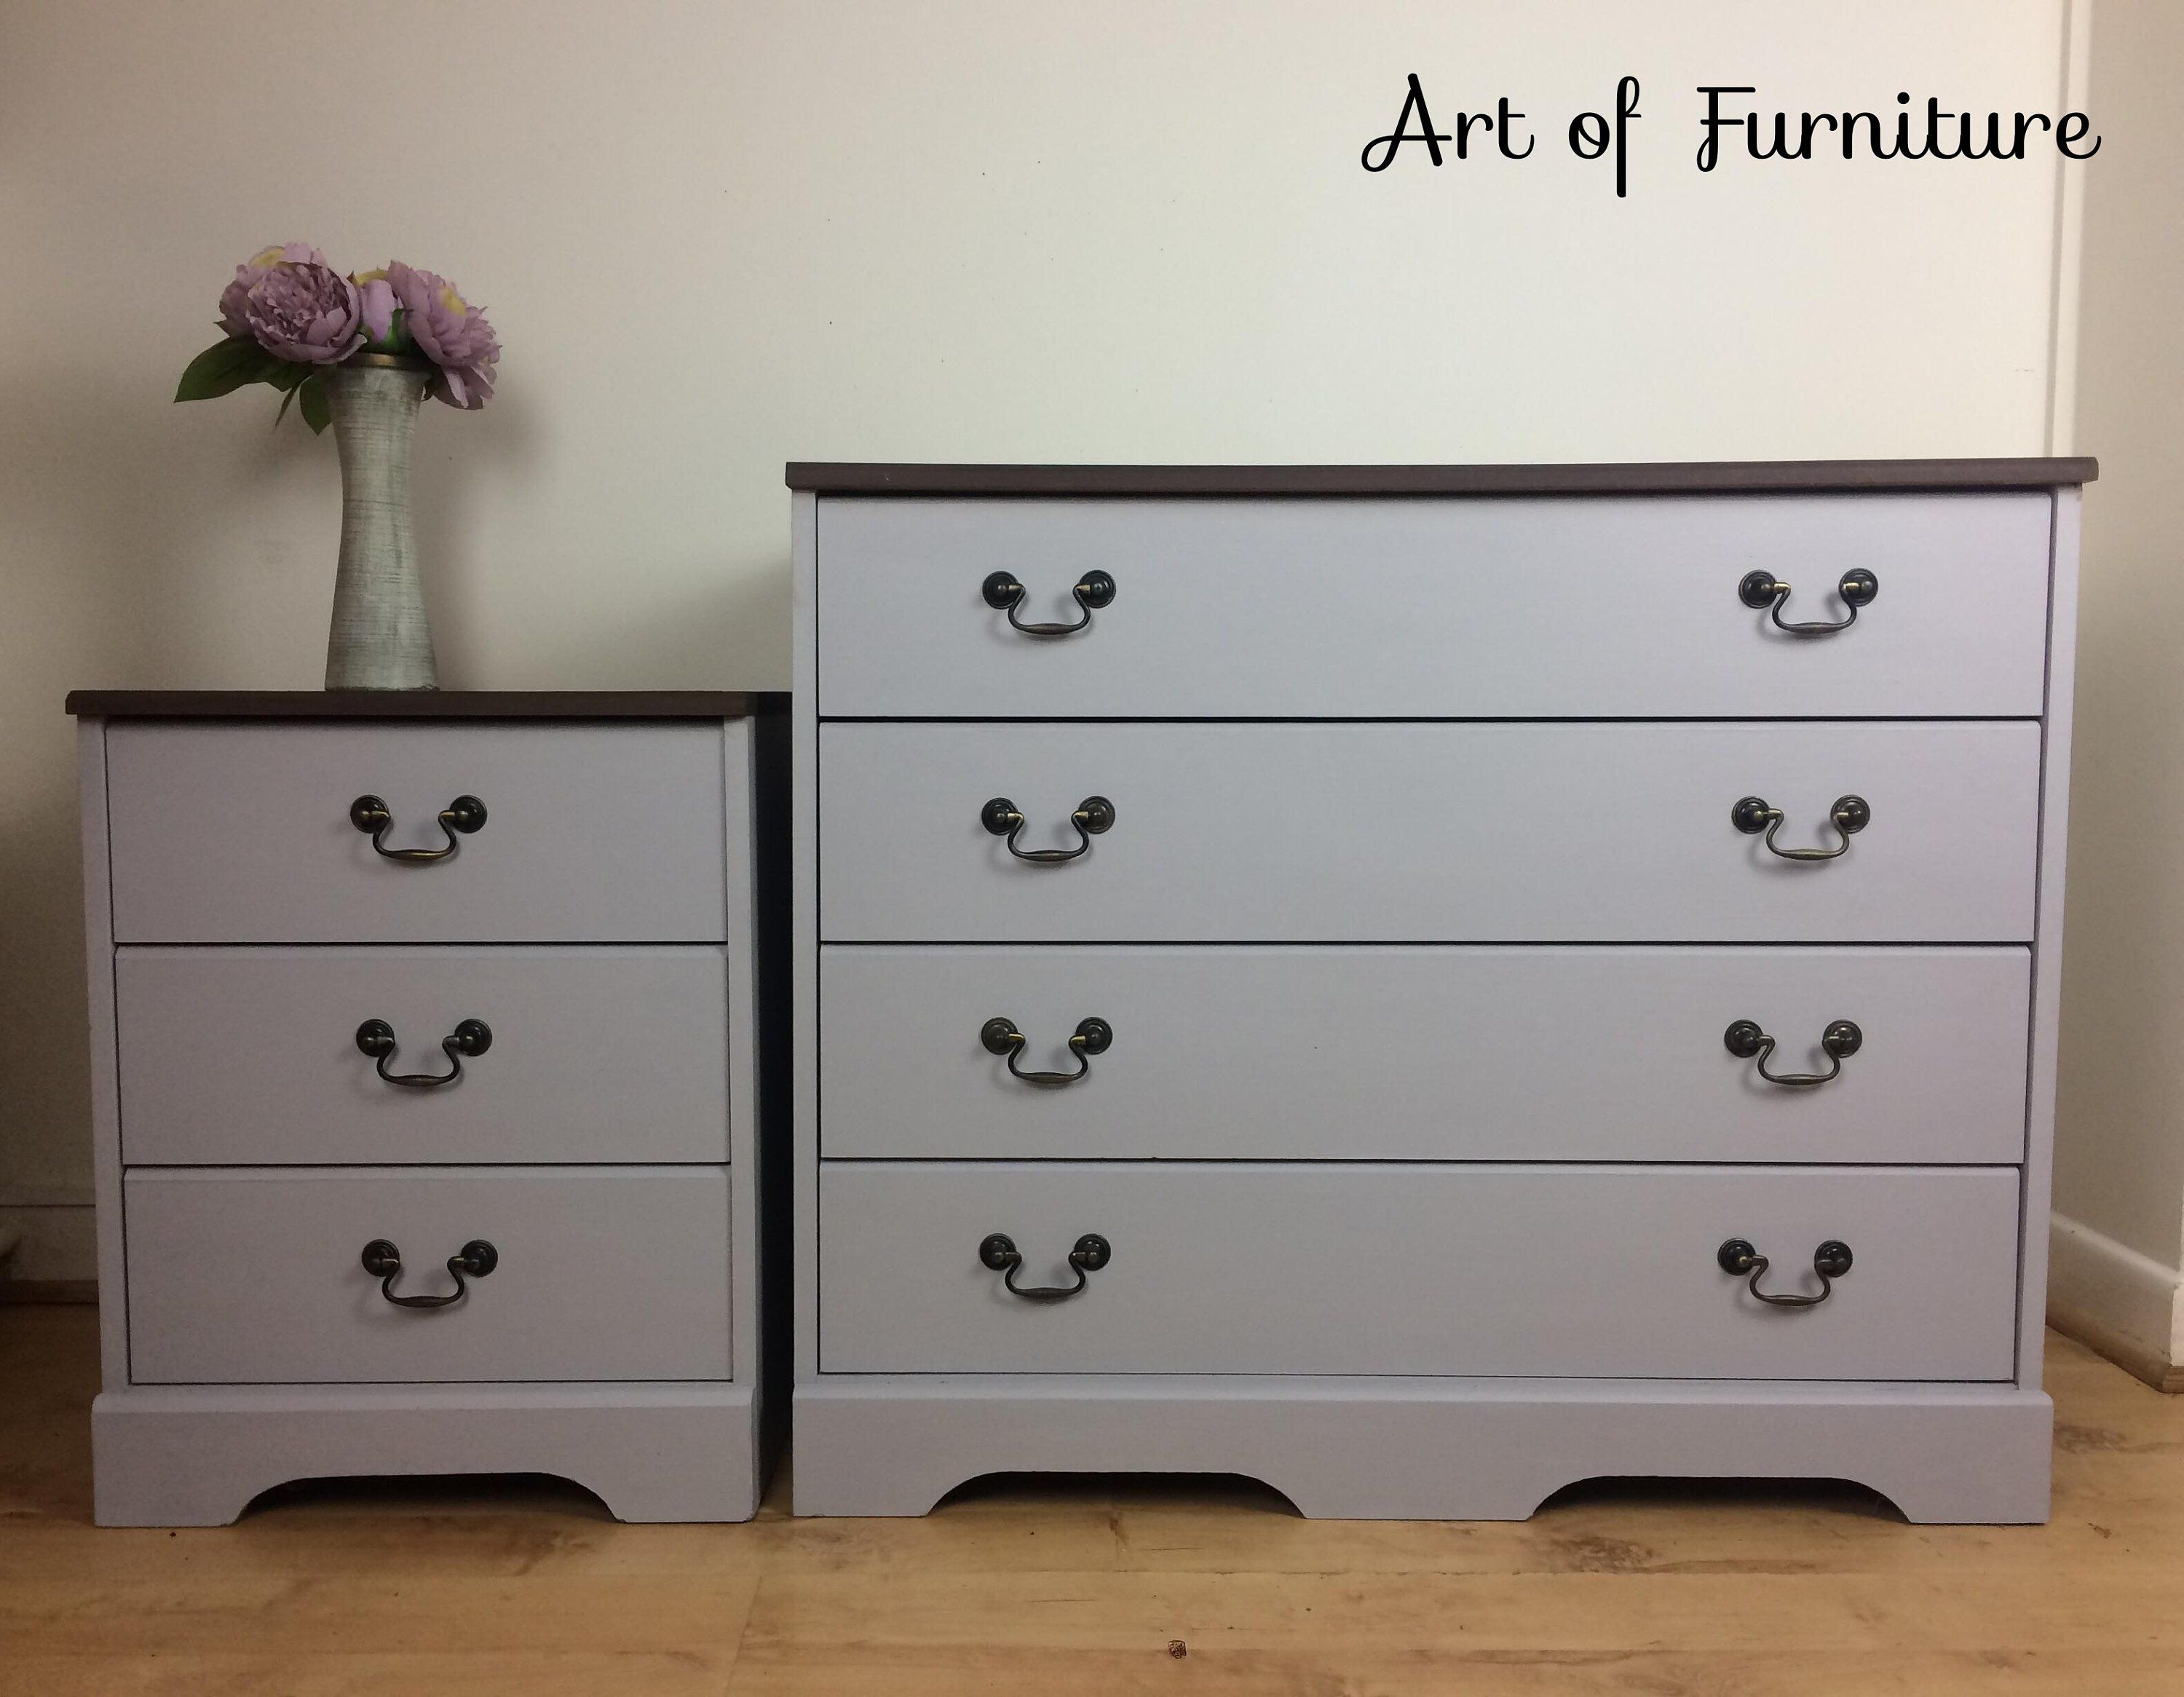 Solid Farmhouse Chest Of Drawers Matching Bedside Table Hand Painted In Light Grey Chalk Paint Upcycled Upcycled Furniture Furniture Hand Painted Furniture